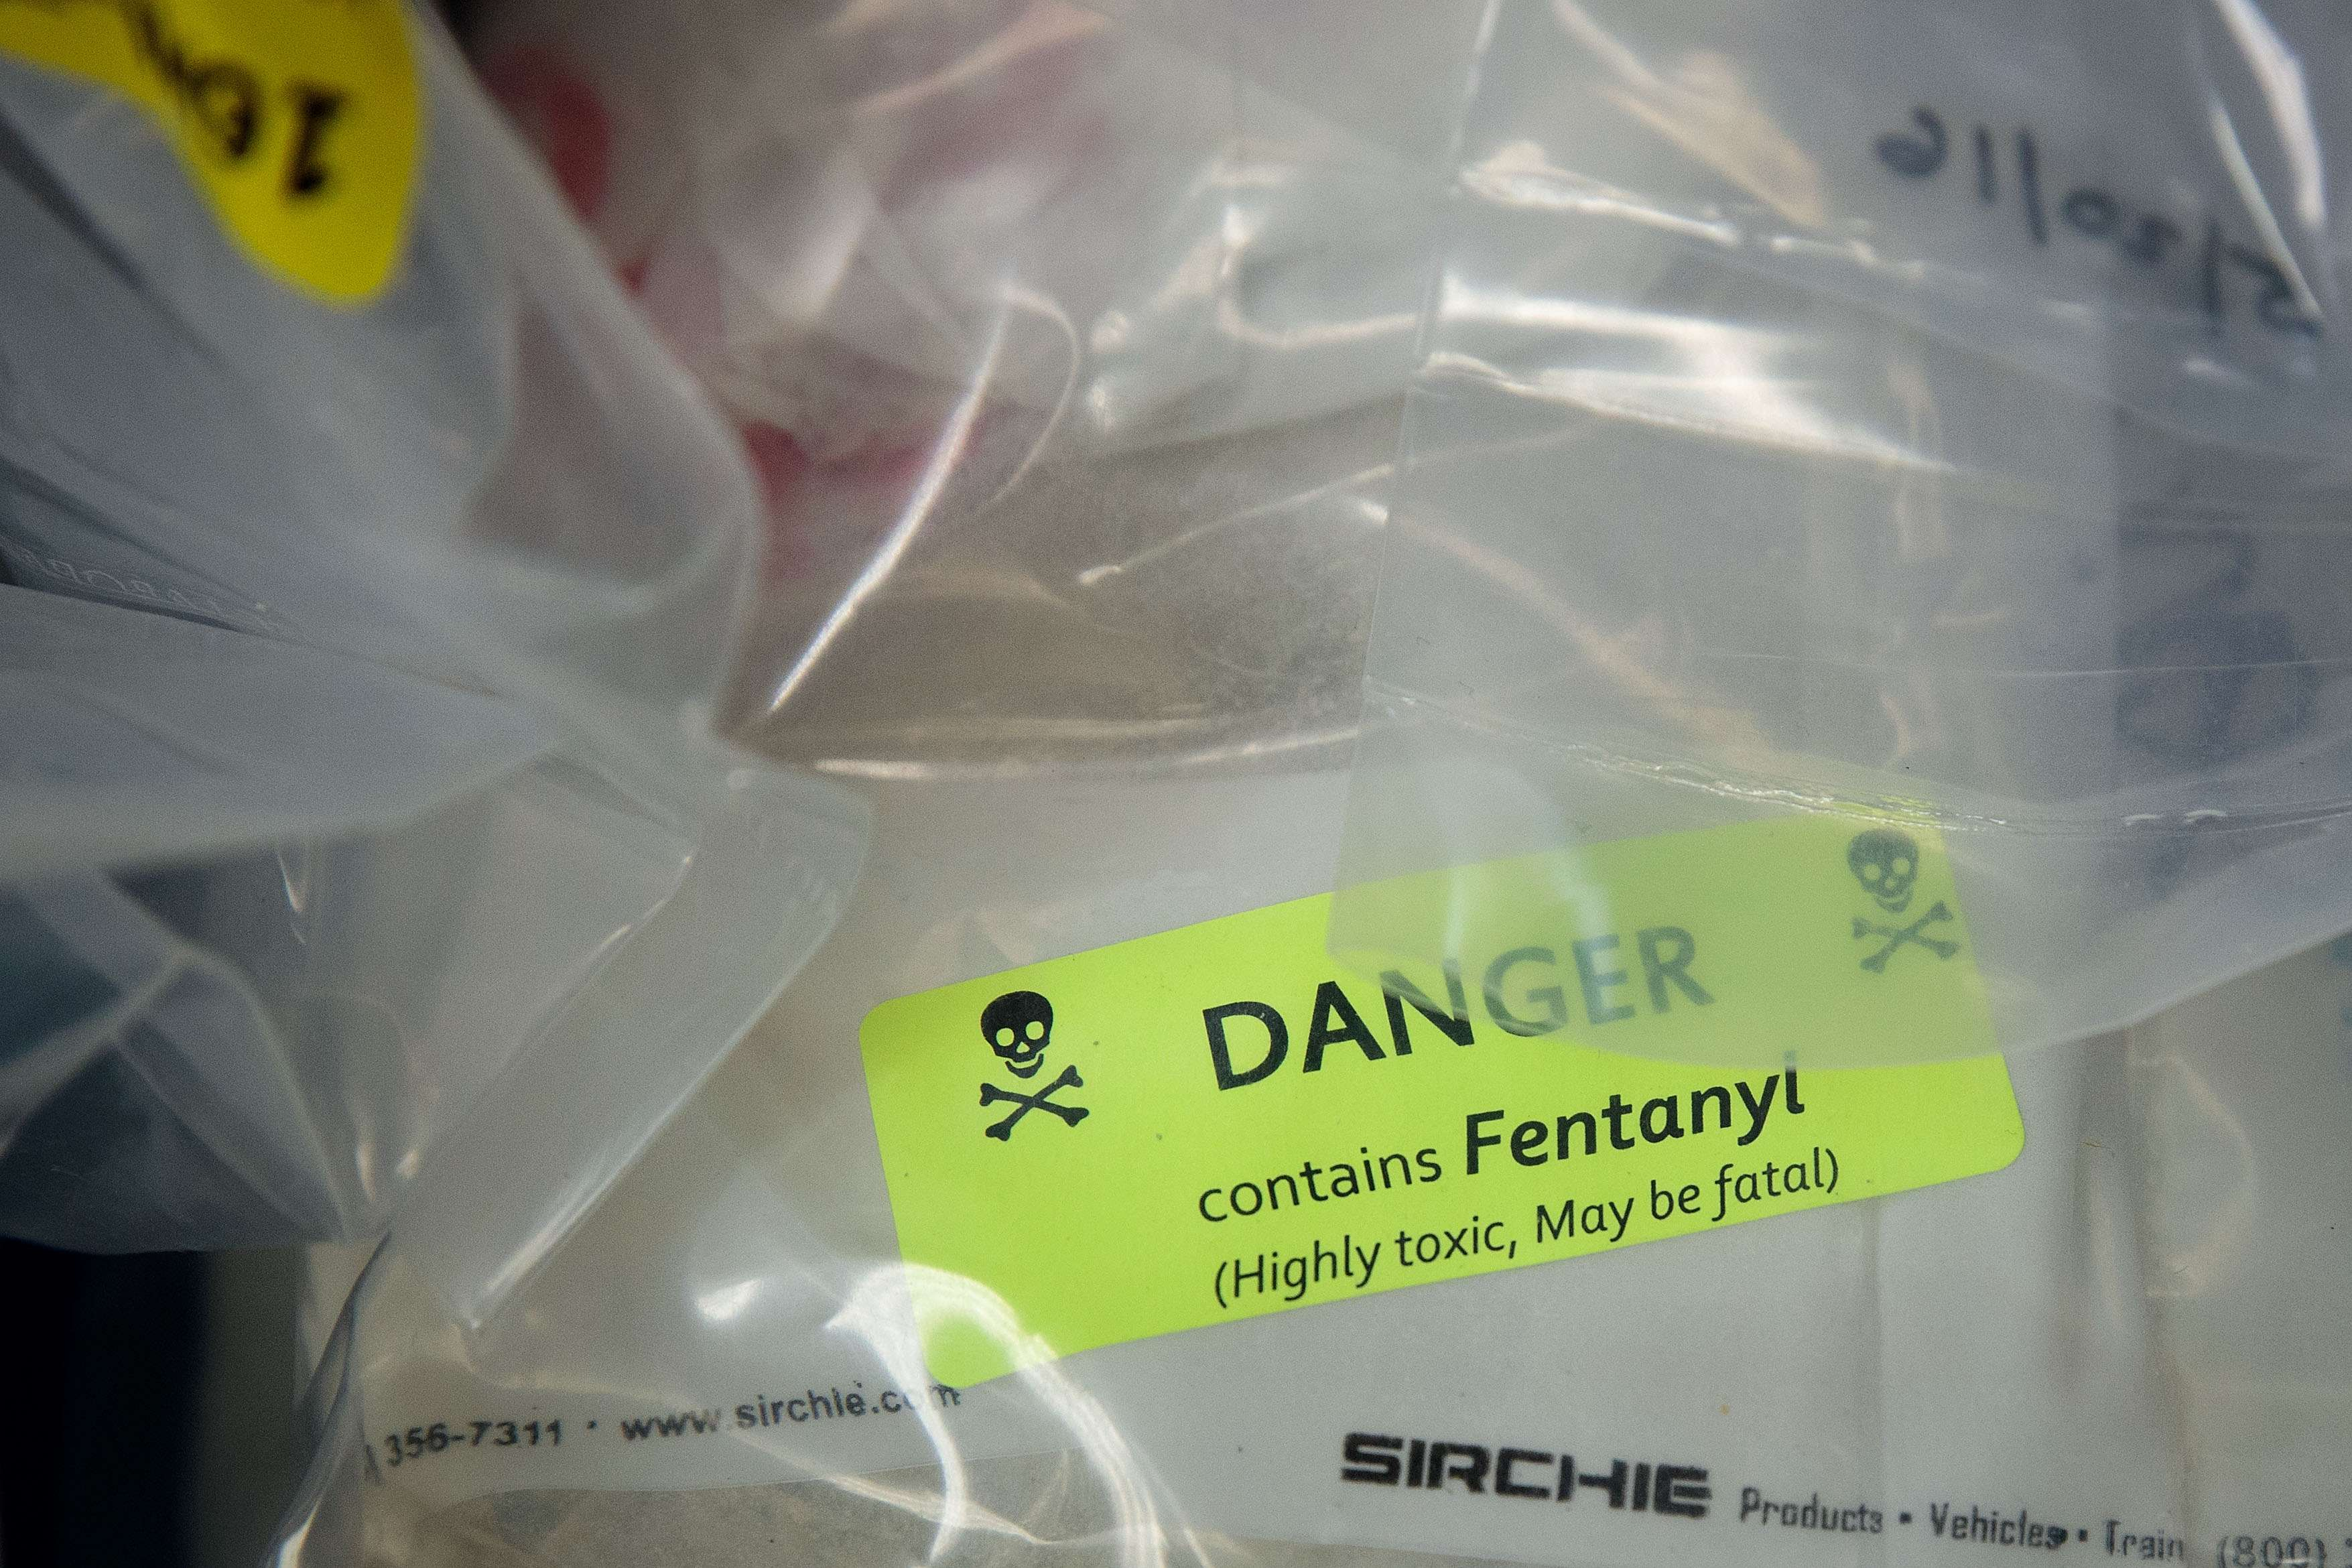 Our fentanyl is very pure': deadly opioid for sale to UK users